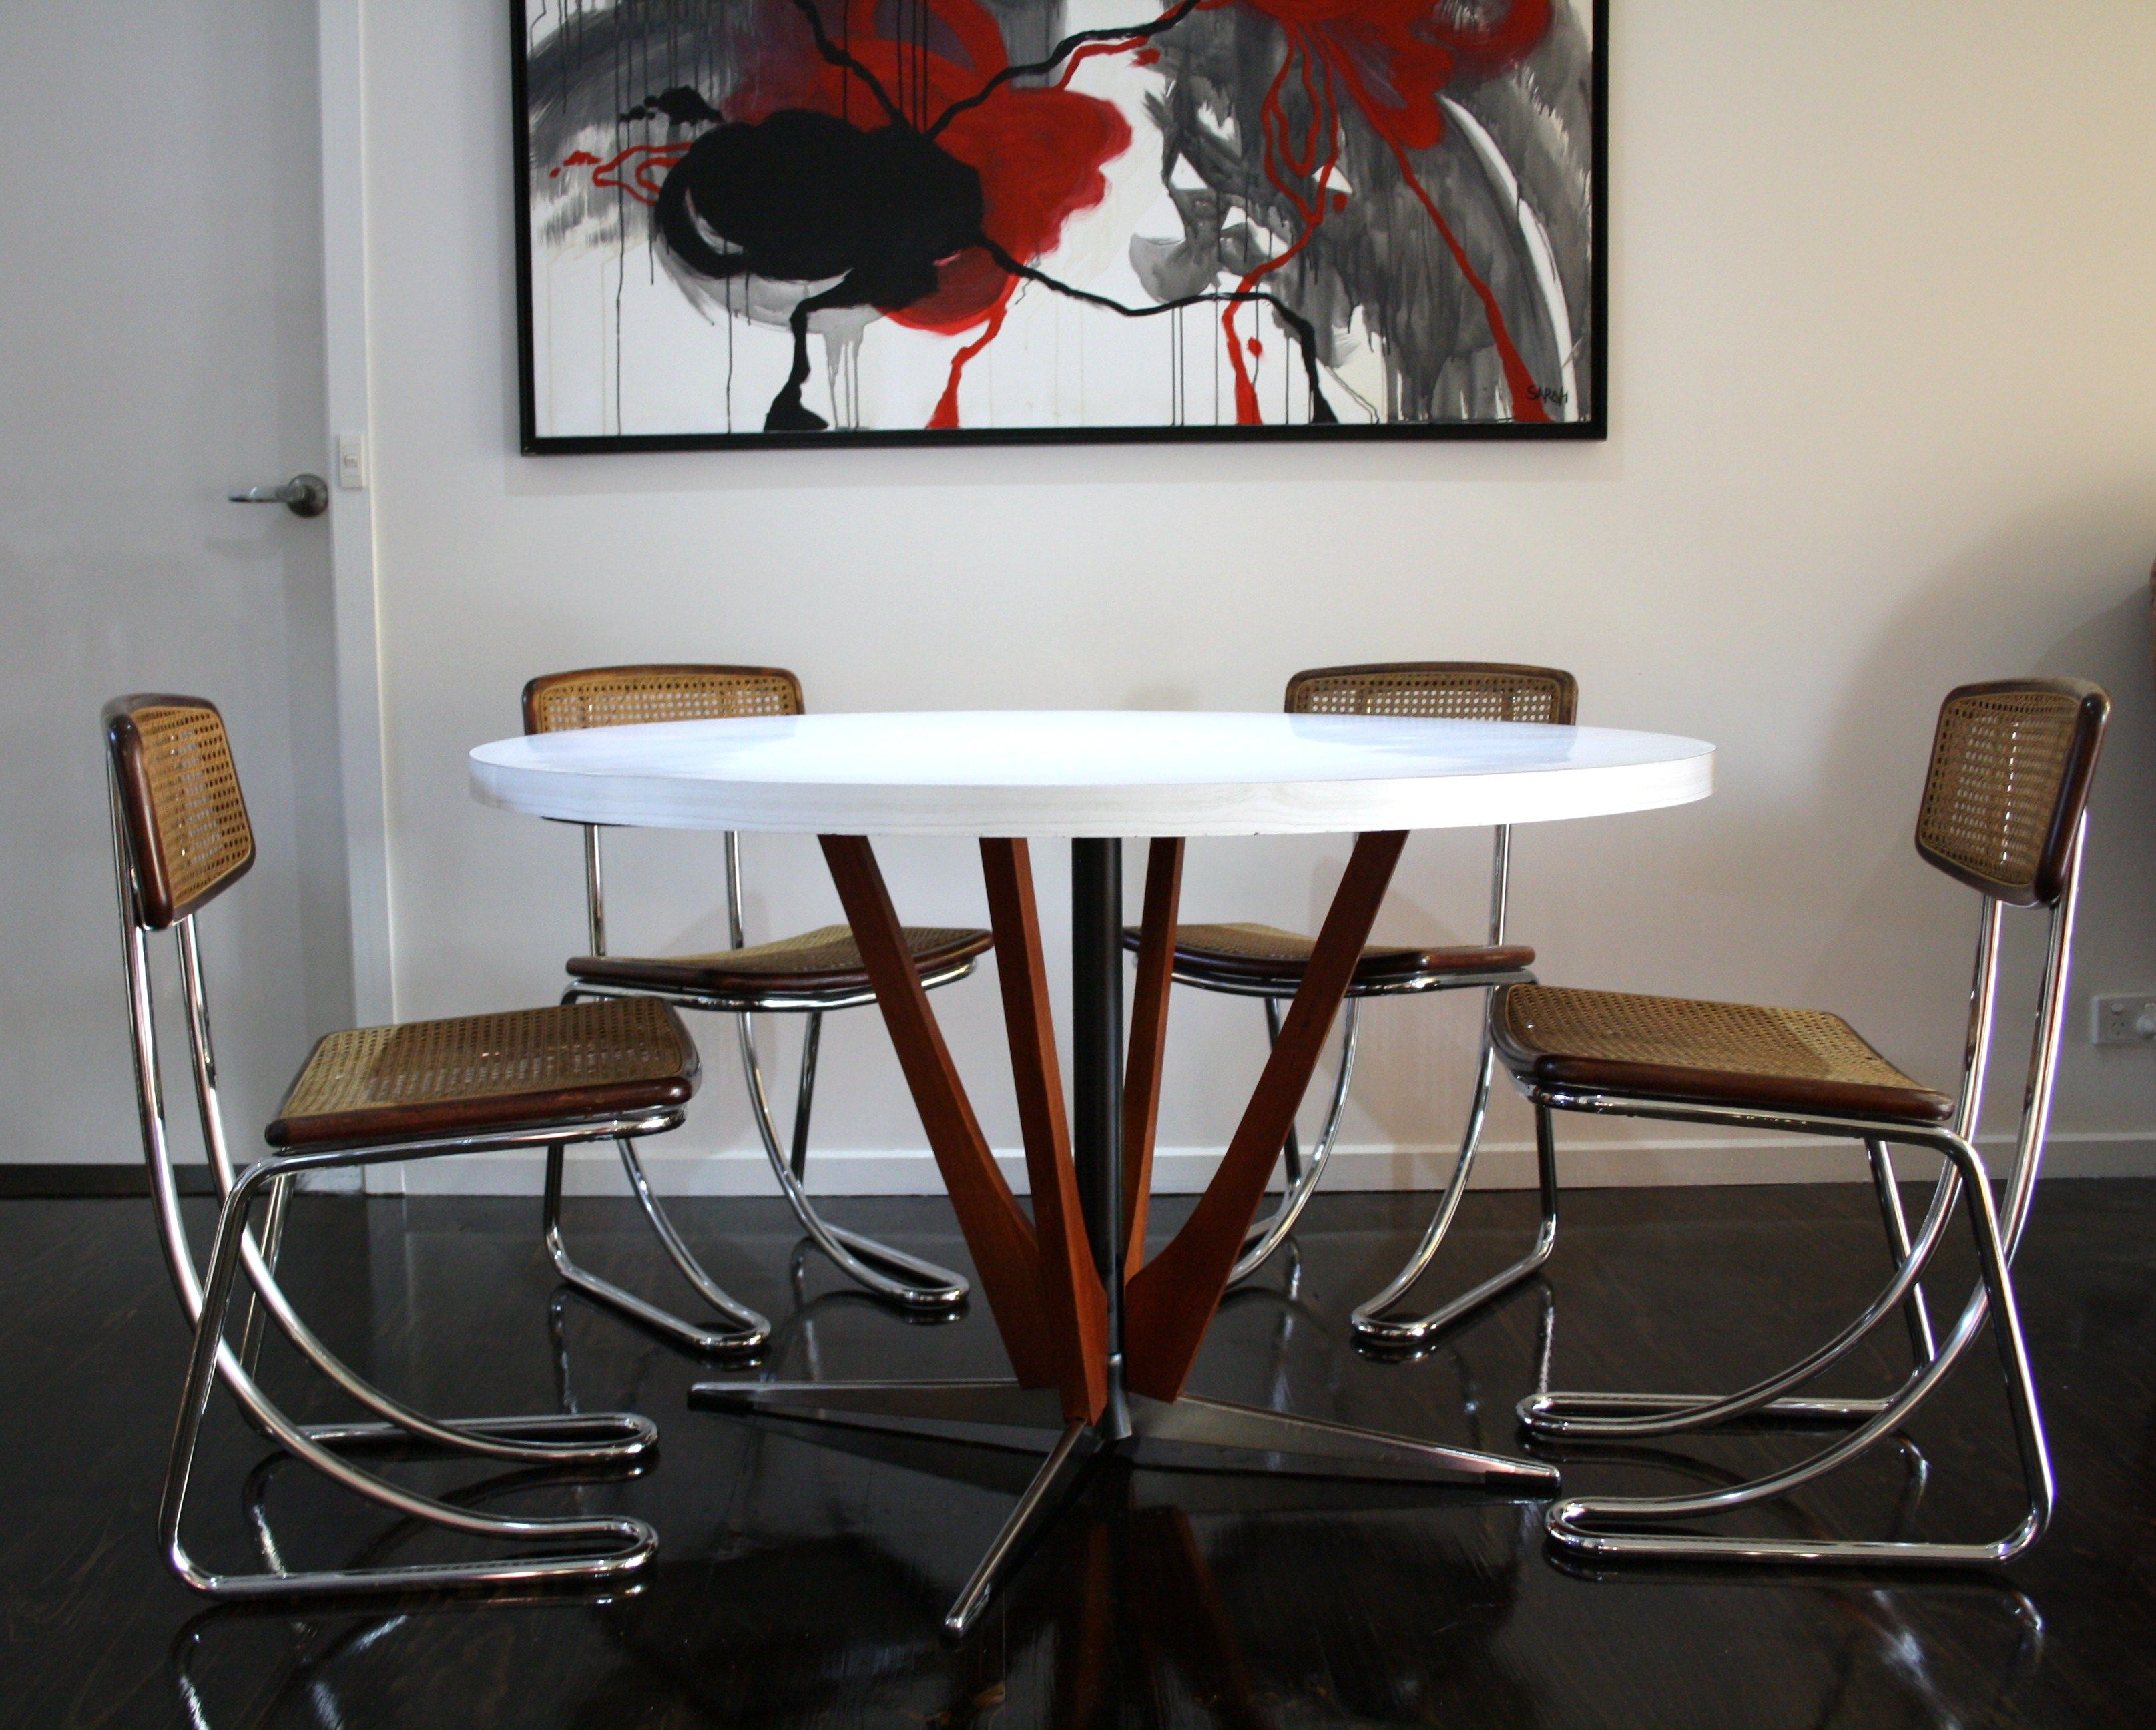 chrome dining chairs australia chair upholstered mid century teak and laminex table cane